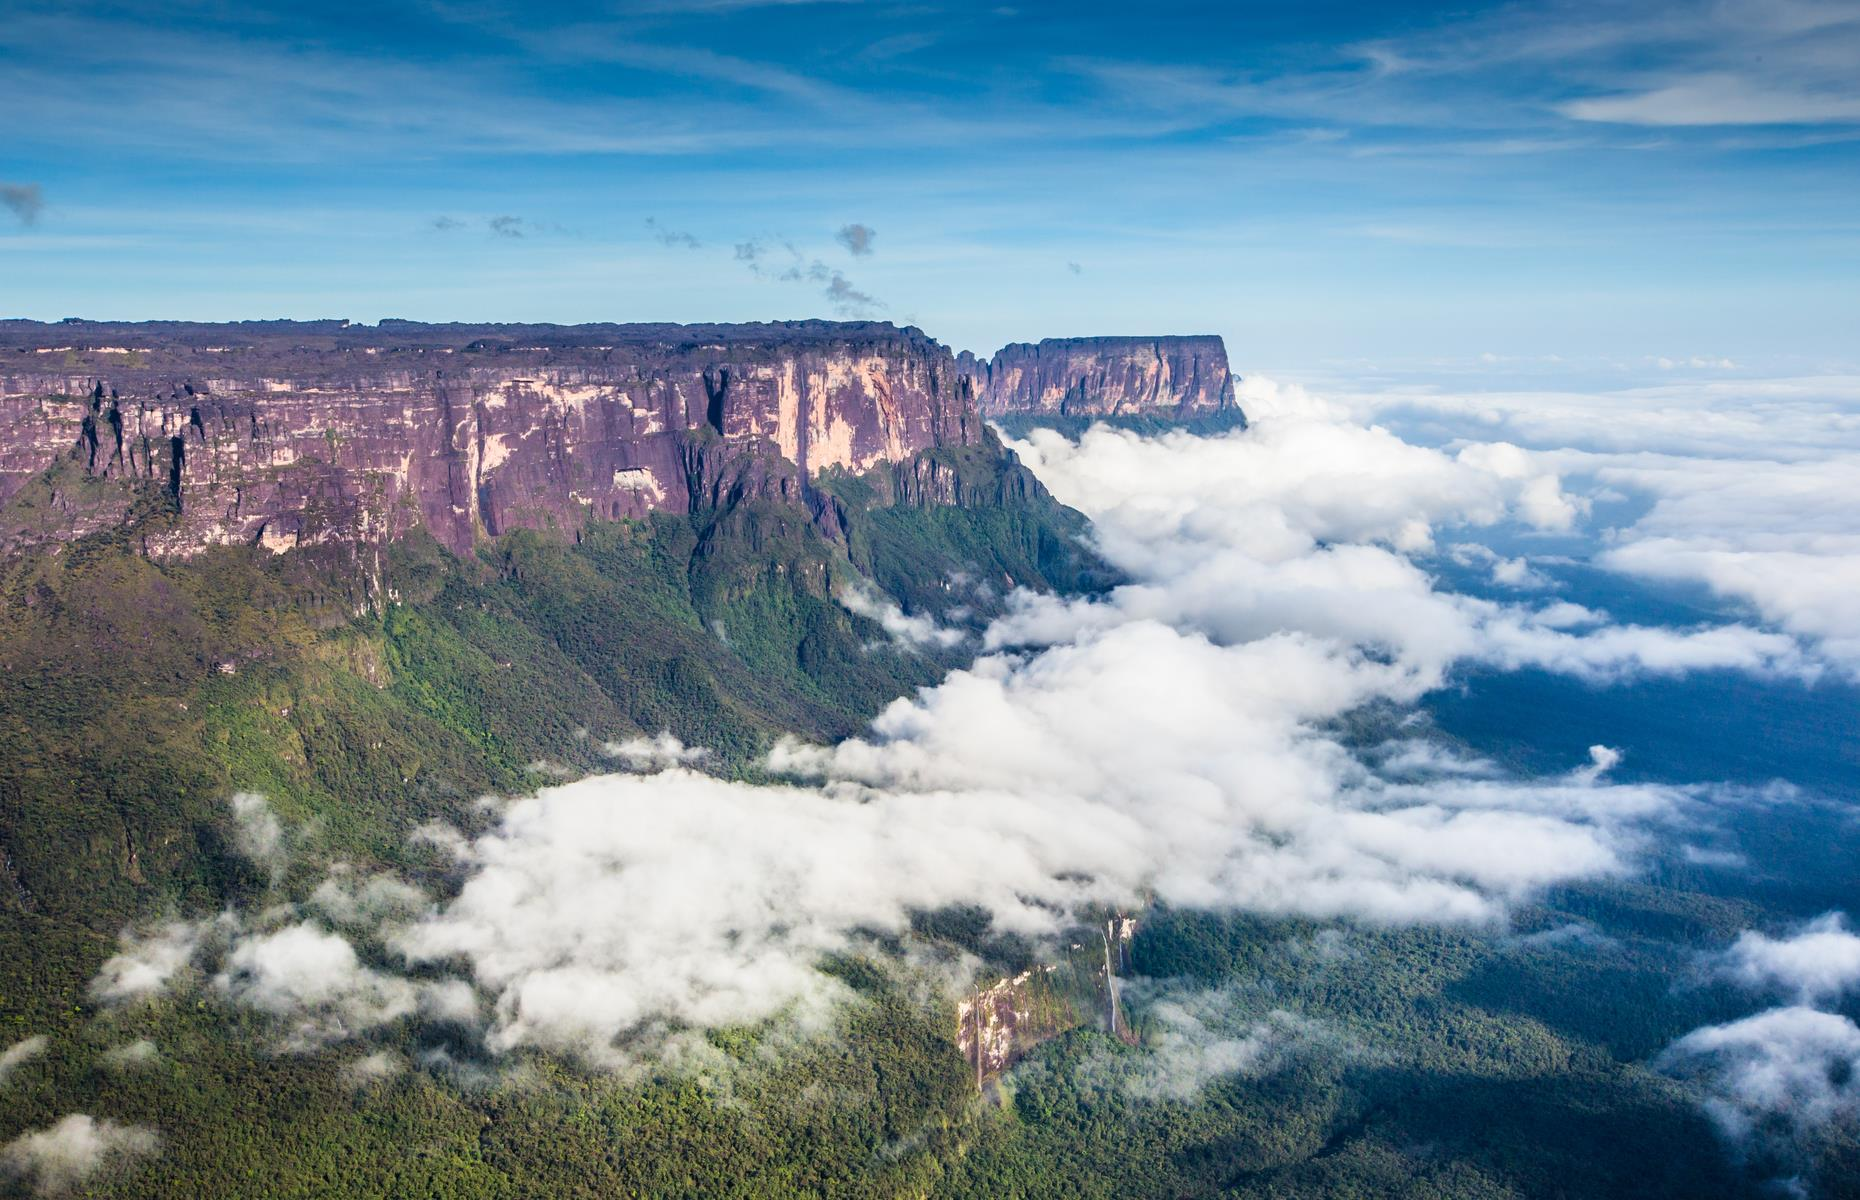 Slide 13 of 31: Towering above the clouds, the majestic Mount Roraima is a natural border between Venezuela, Brazil and Guyana in South America. Around two billion years old, the flat-top mountain is considered to be among the oldest in the world. It's also the highest tepui (South American table-top mountain) on the continent. The otherworldly looking natural wonder is said to be the inspiration behind the plateau with dinosaurs and ape-men in Sir Arthur Conan Doyle's 1912 novel The Lost World.